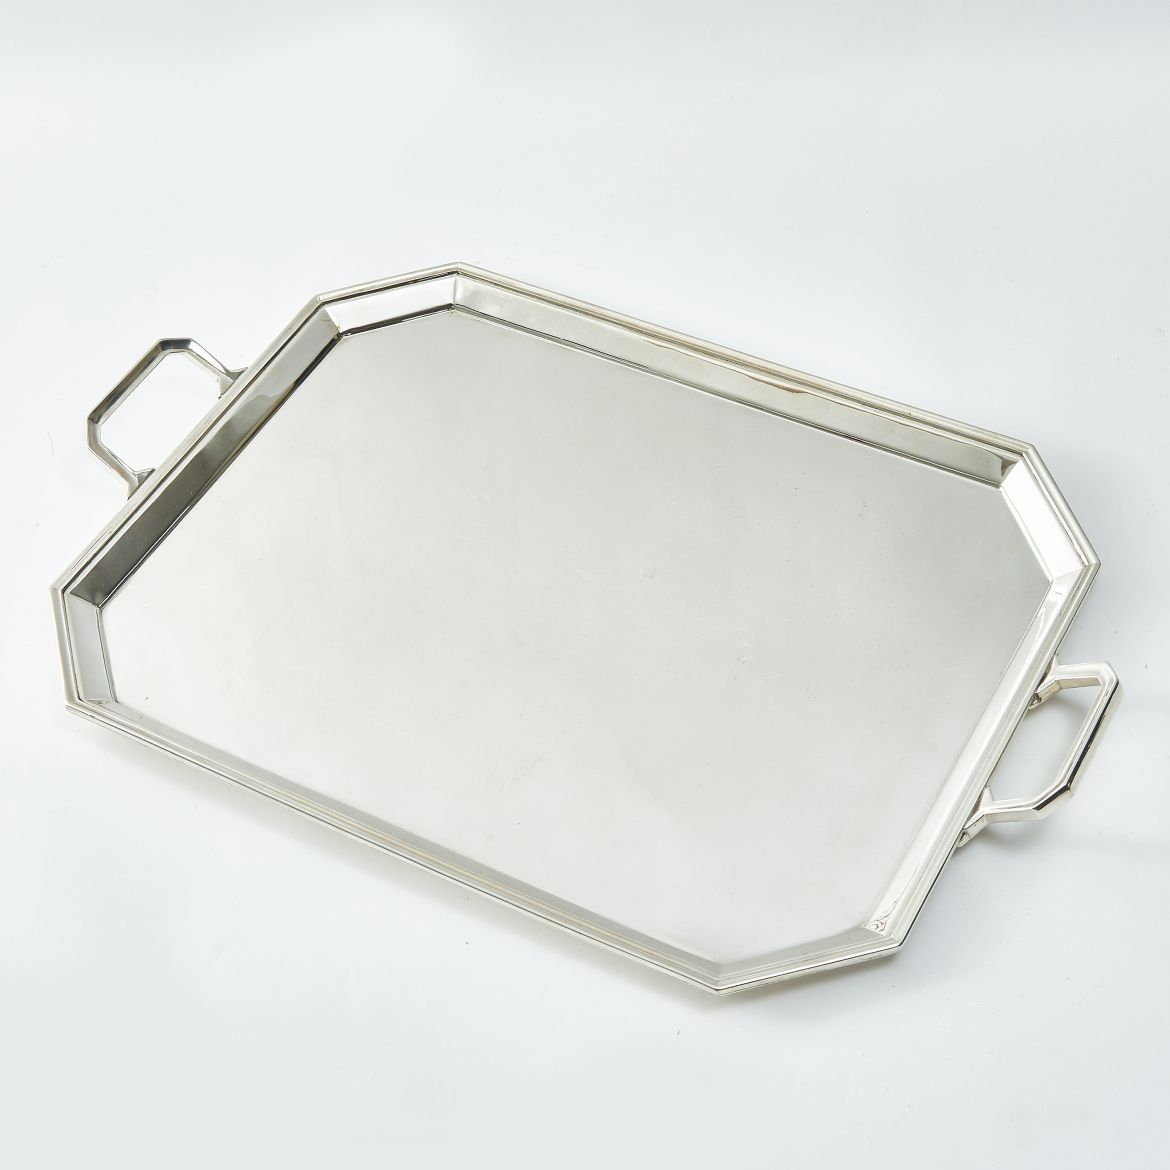 Silver Plate Tray With Canted Corners